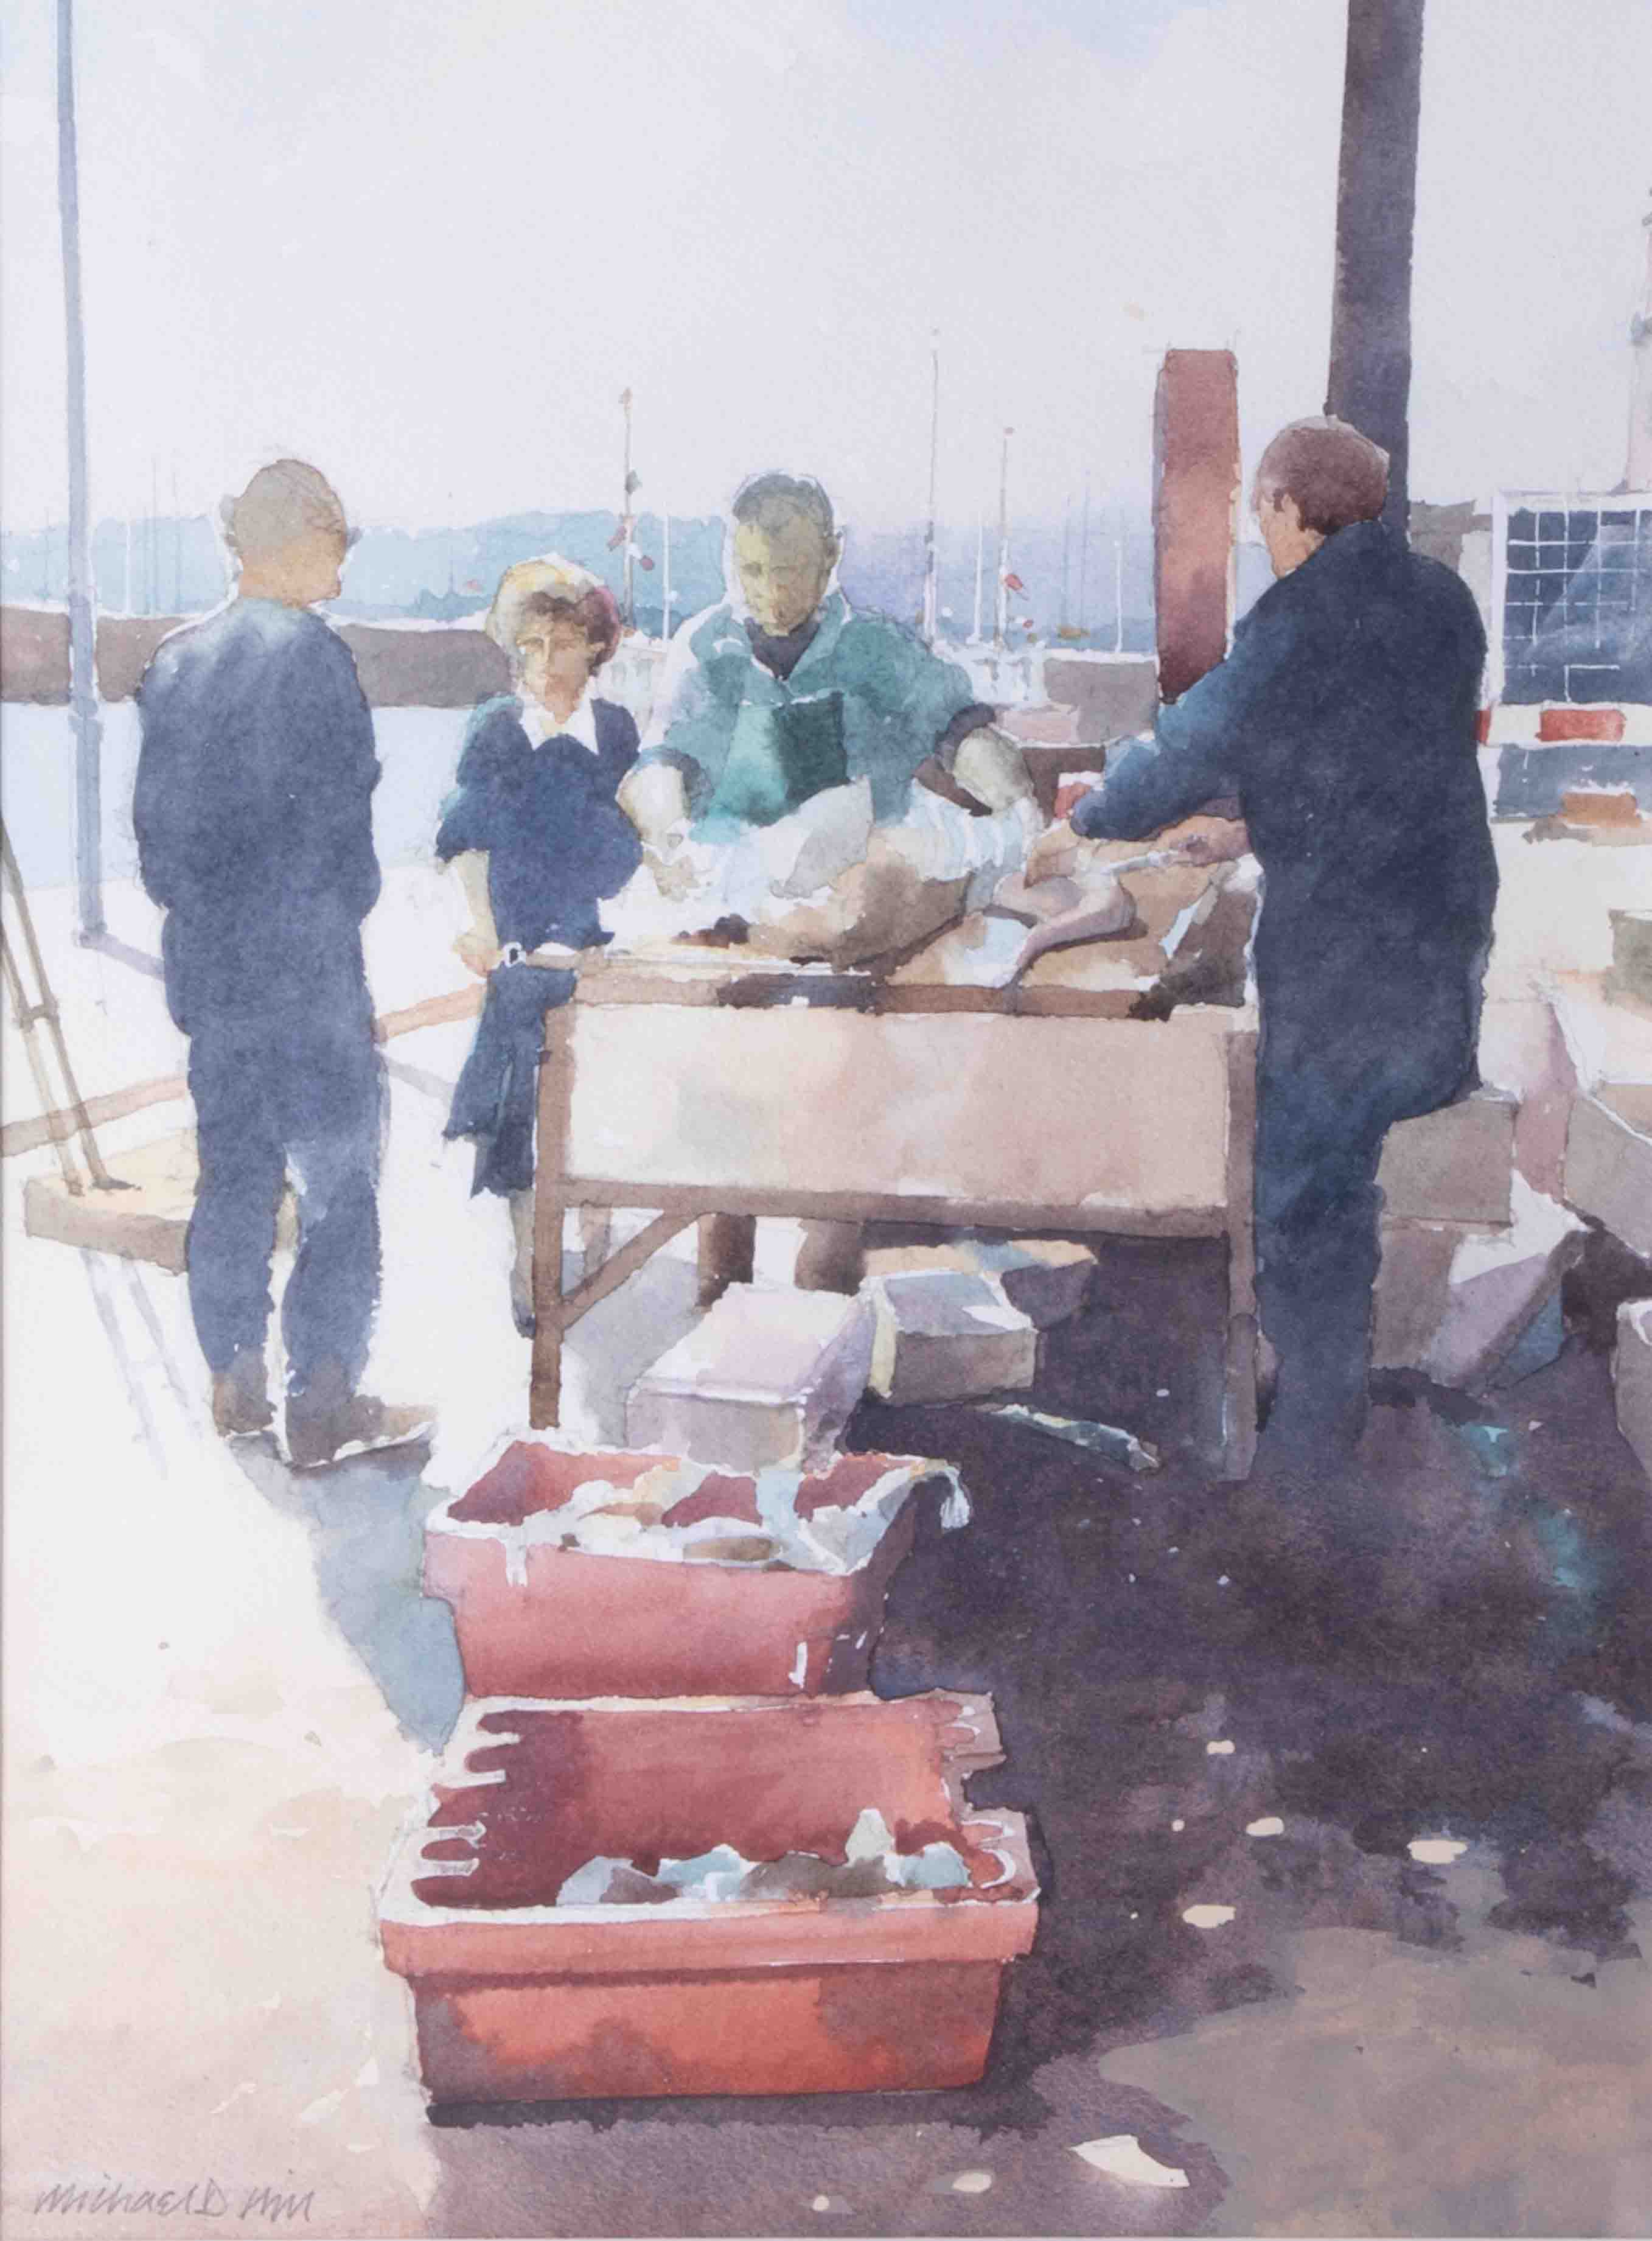 Michael D Hill, 'Fish Market' signed watercolour, 35cm x 26cm, framed and glazed. - Image 2 of 2